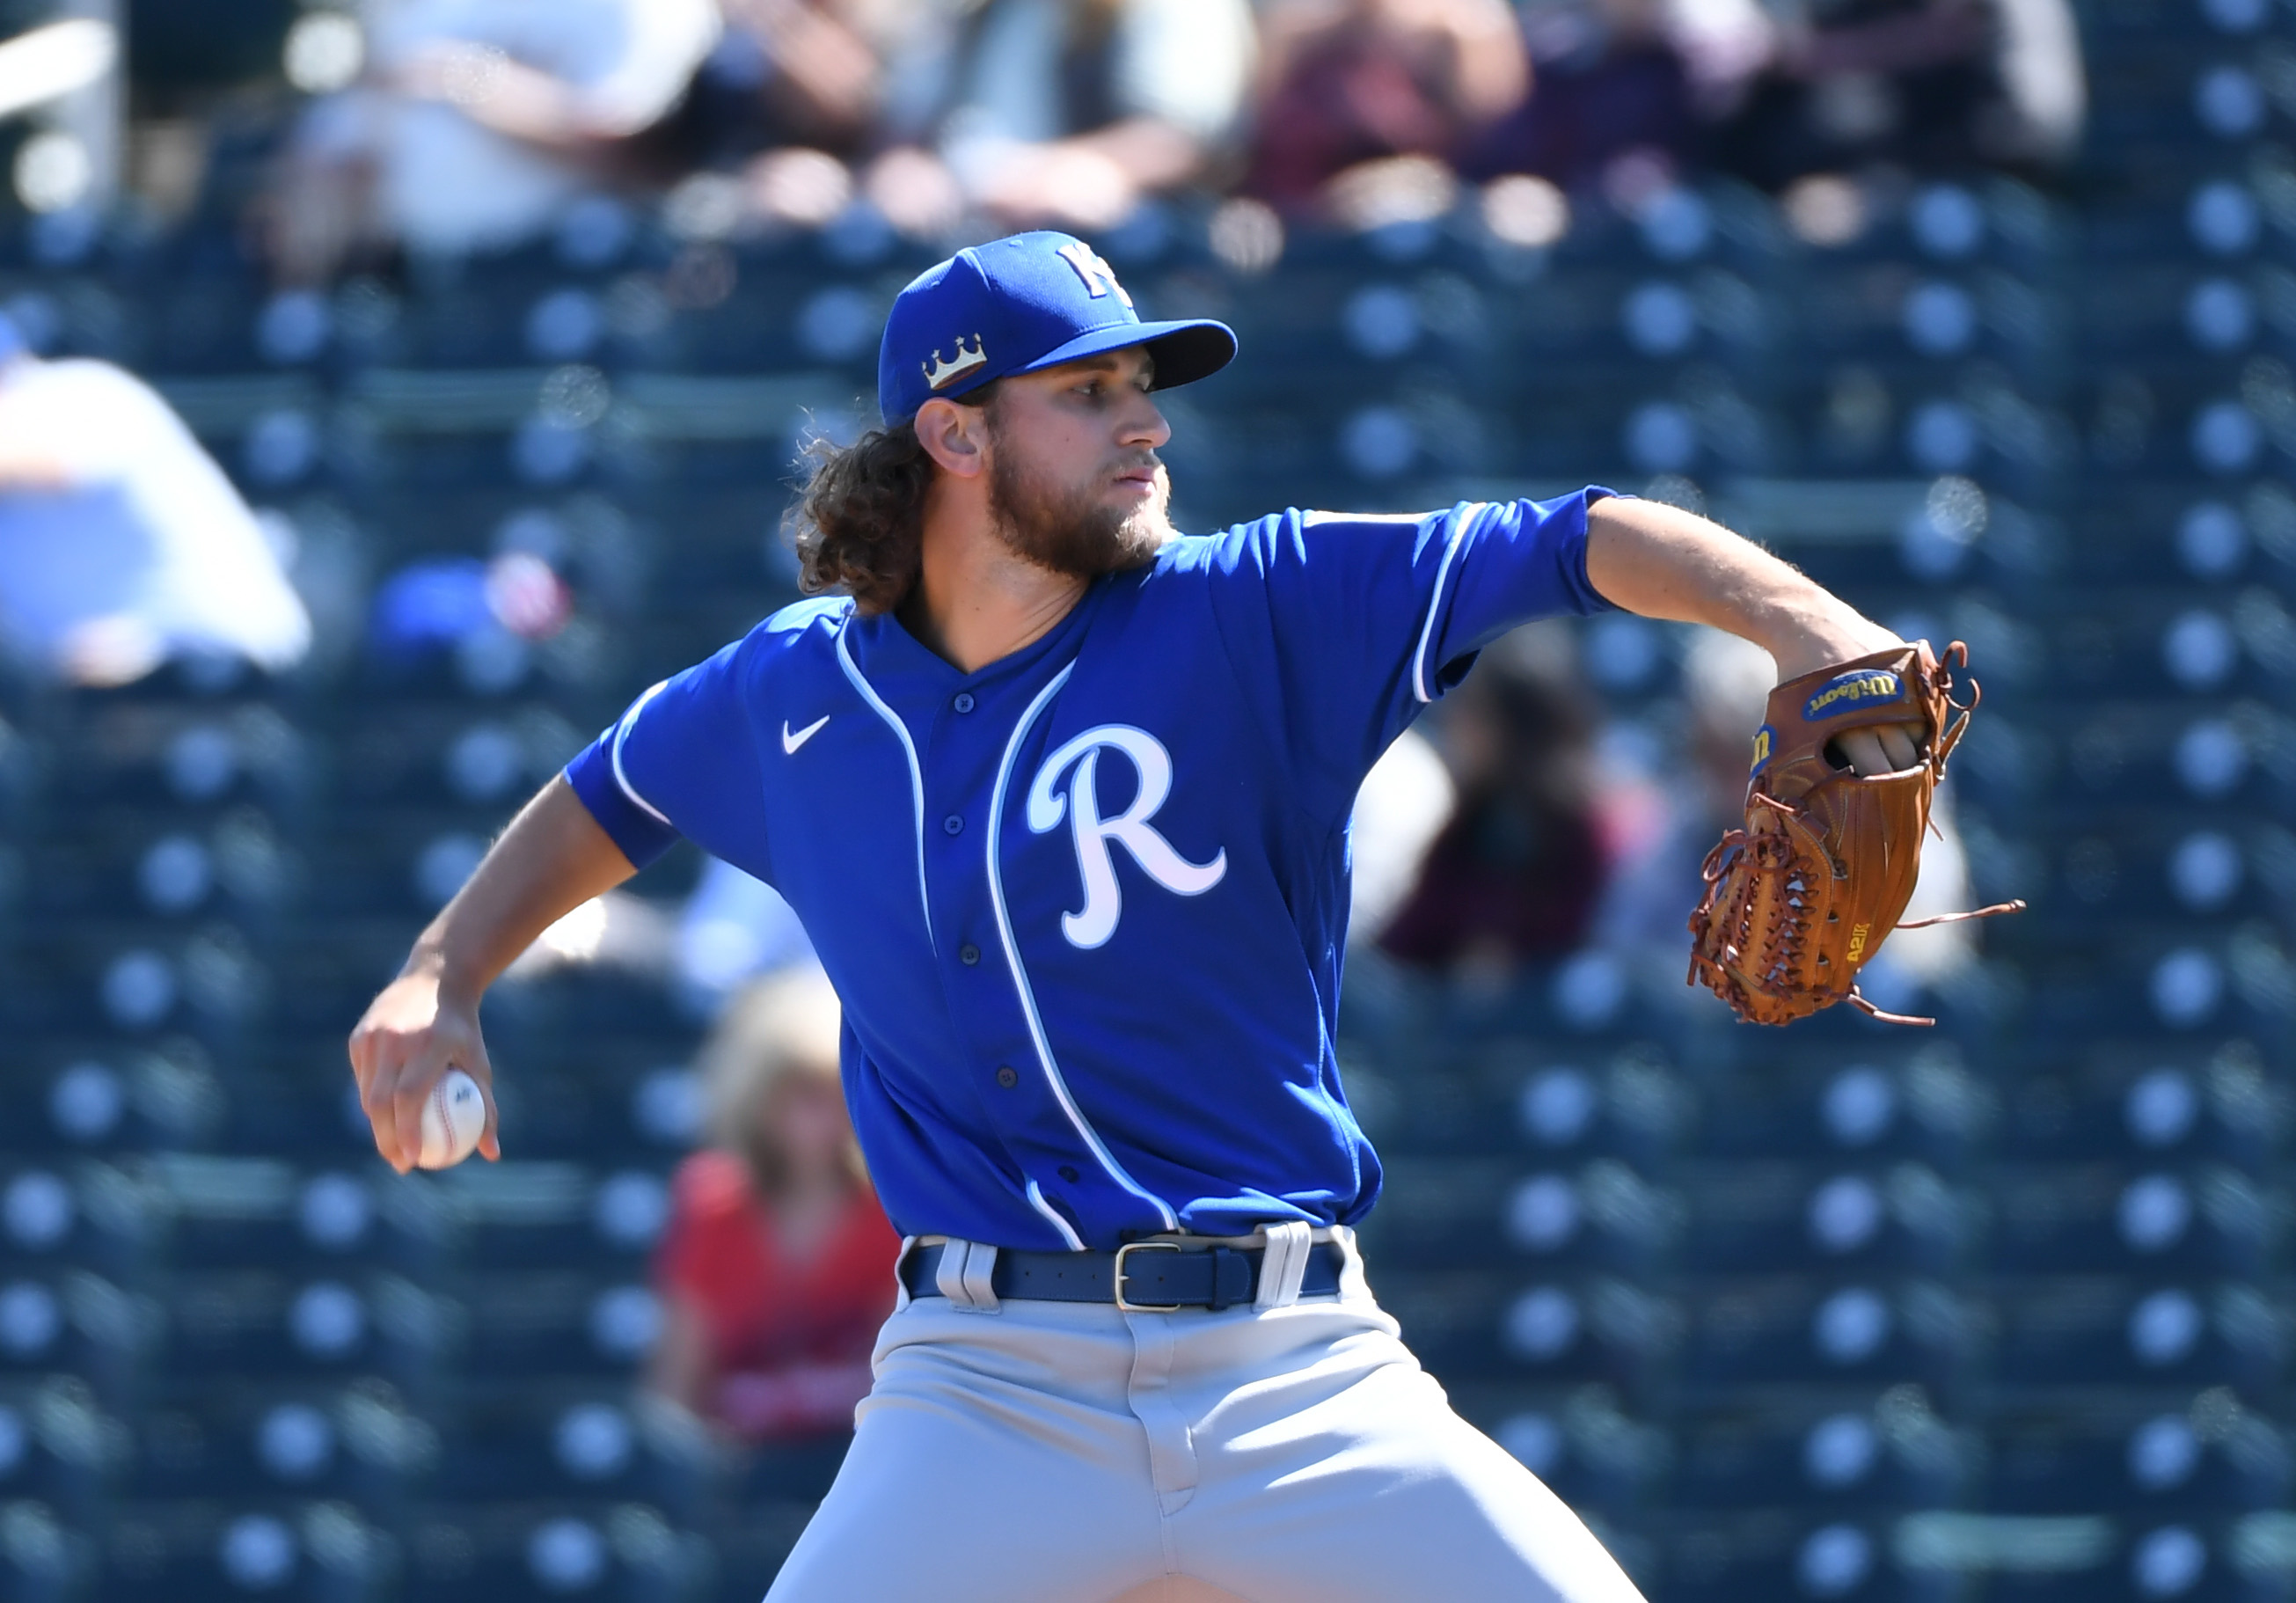 Jackson Kowar #37 of the Kansas City Royals delivers a pitch against the Cleveland Indians during a spring training game at Goodyear Ballpark on March 01, 2021 in Goodyear, Arizona.